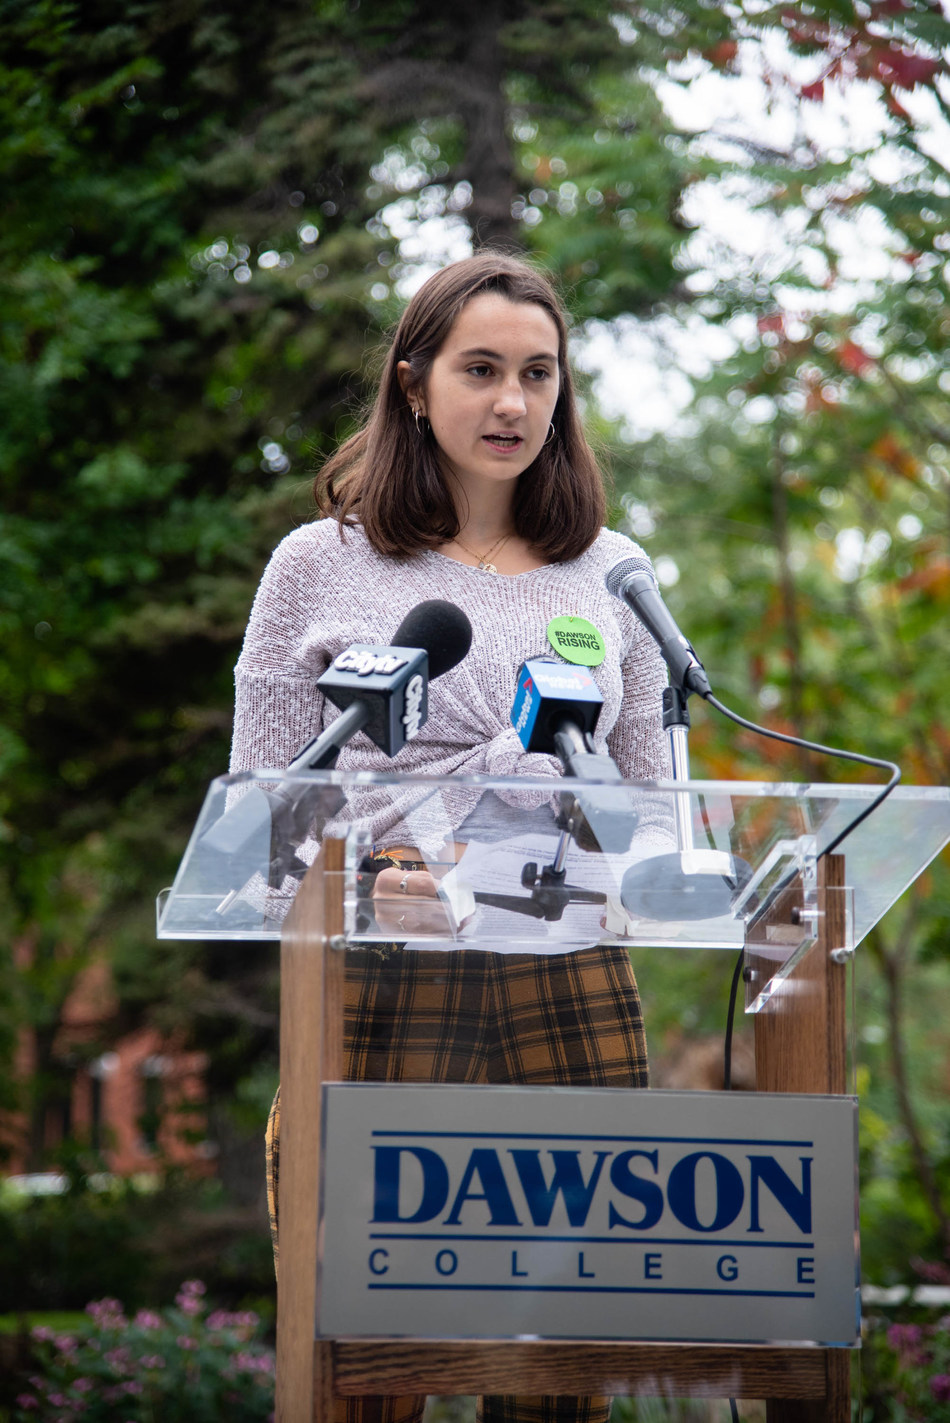 Laura Krochenski speaks about climate change action at a press conference at Dawson College Sept. 24 (CNW Group/Dawson College)